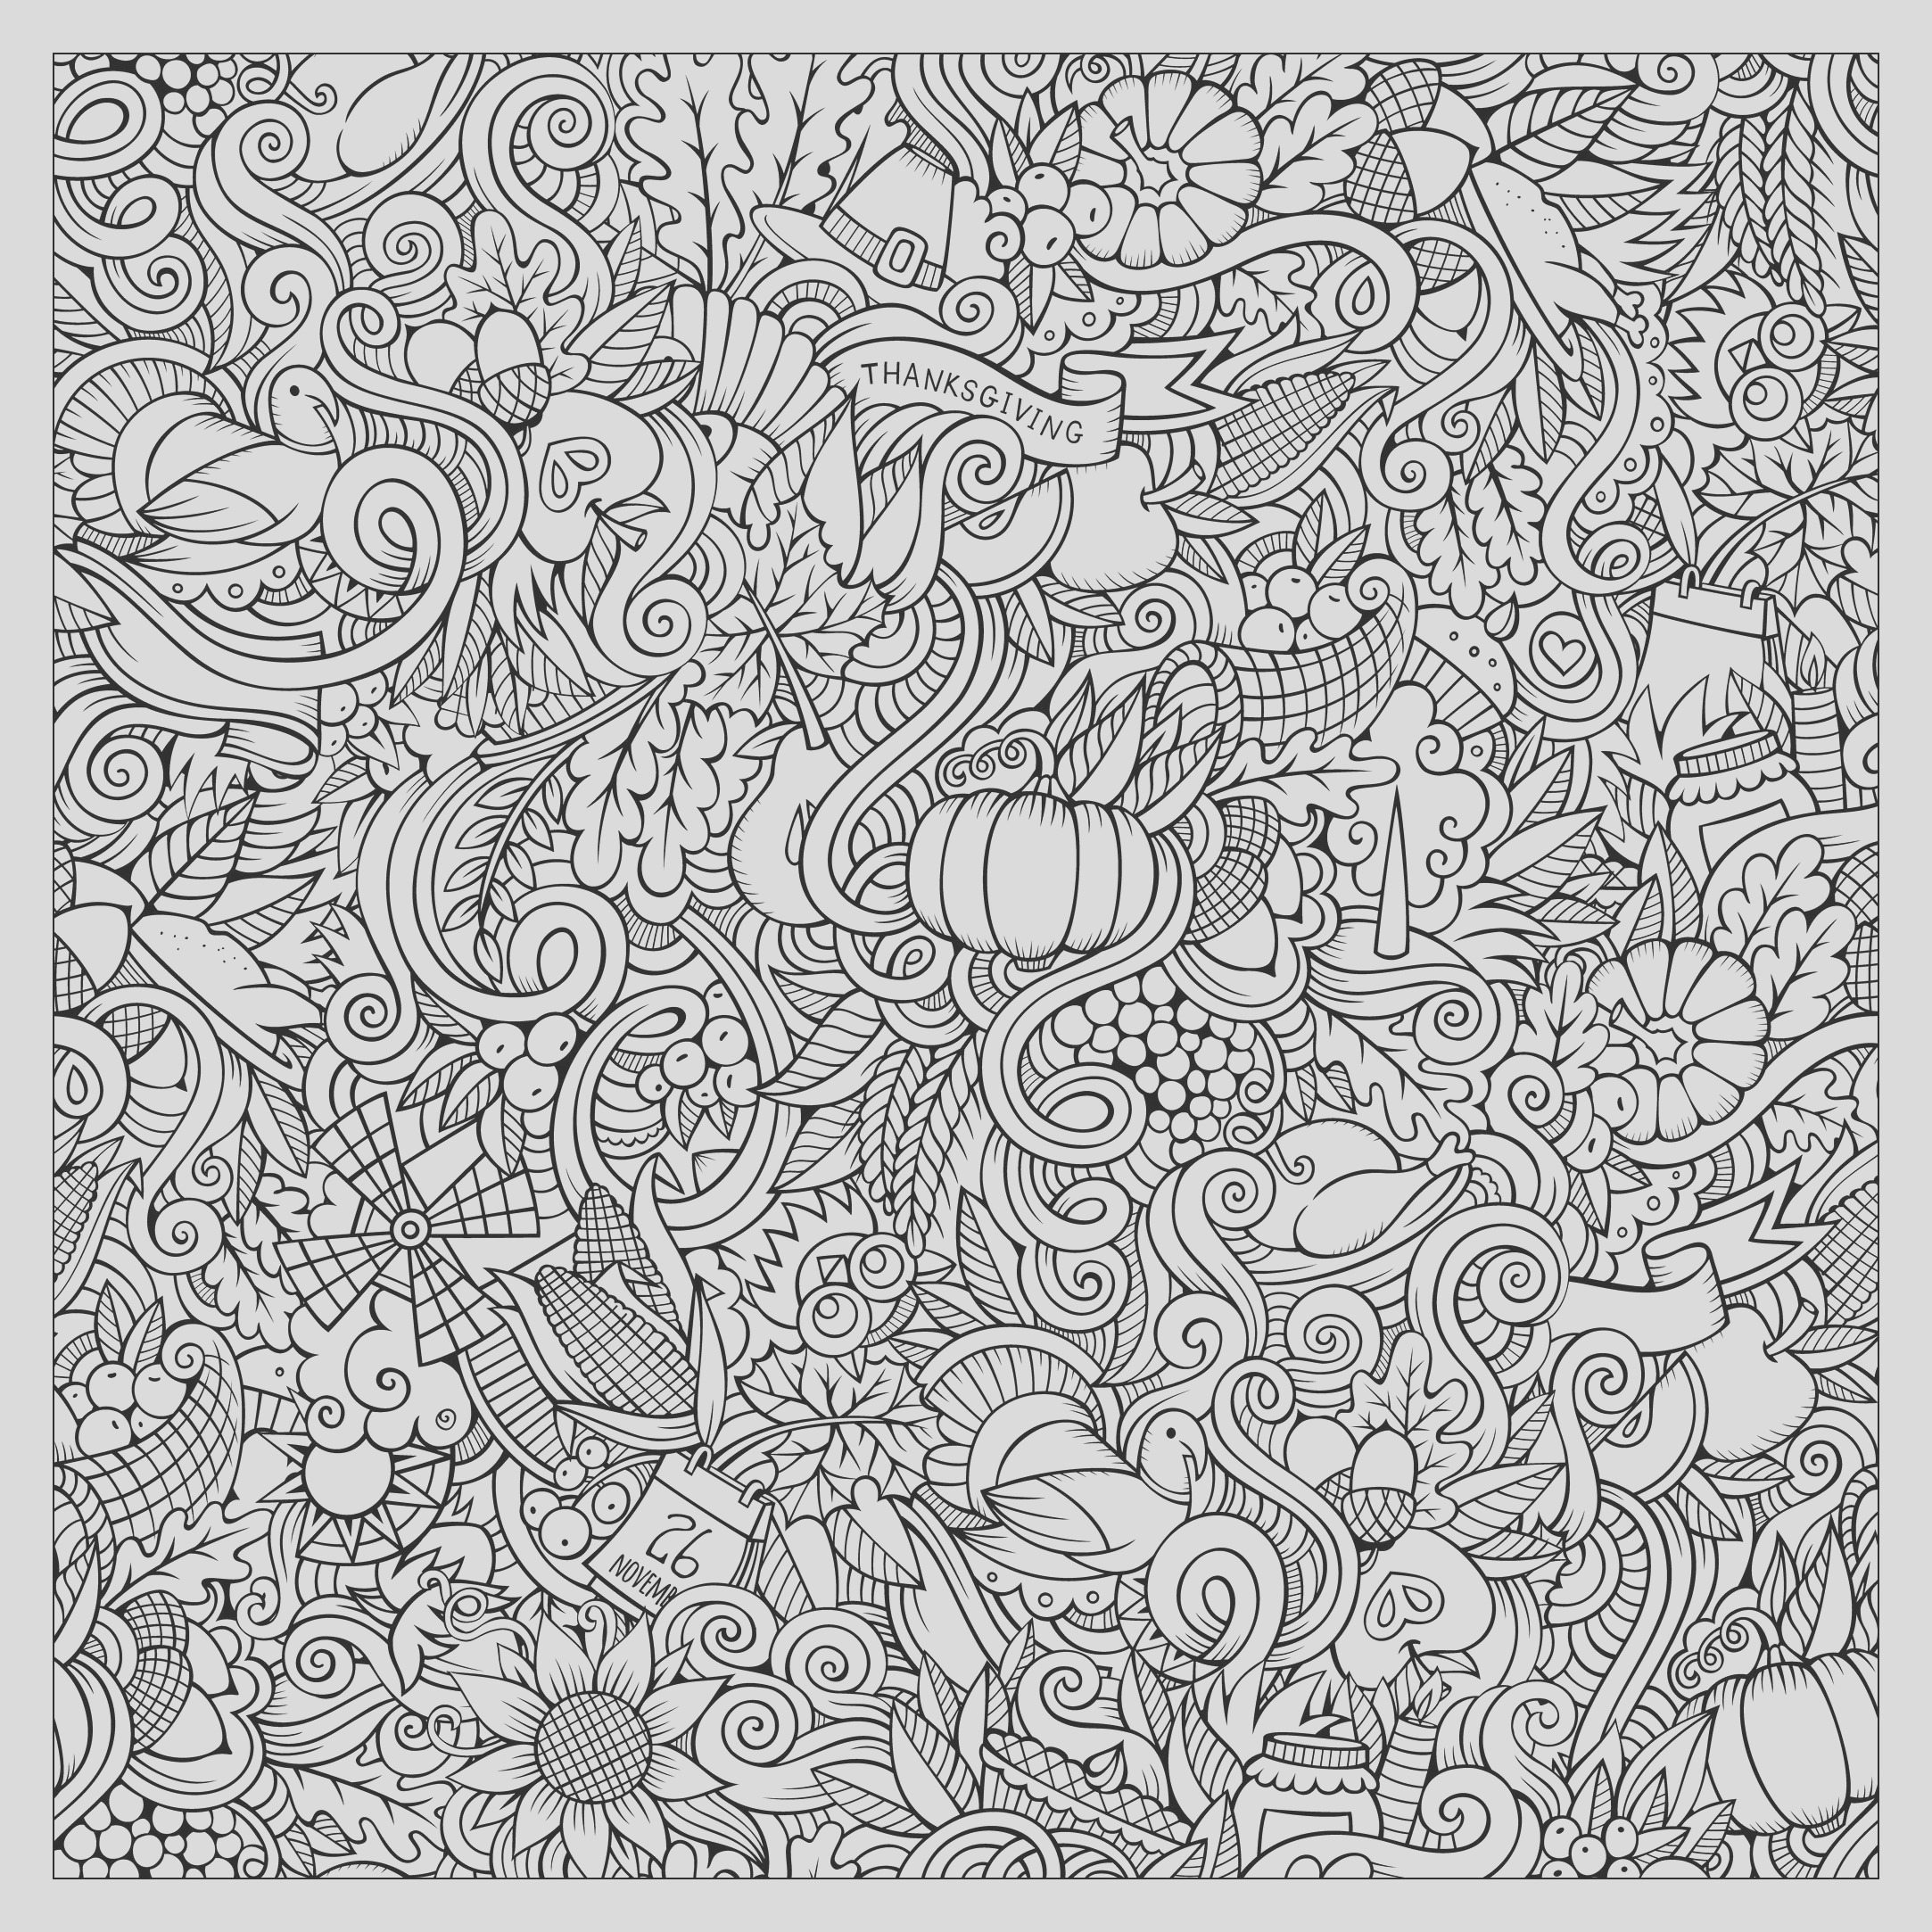 image=events thanksgiving coloring adult thanksgiving square doodle by Olga Kostenko 1